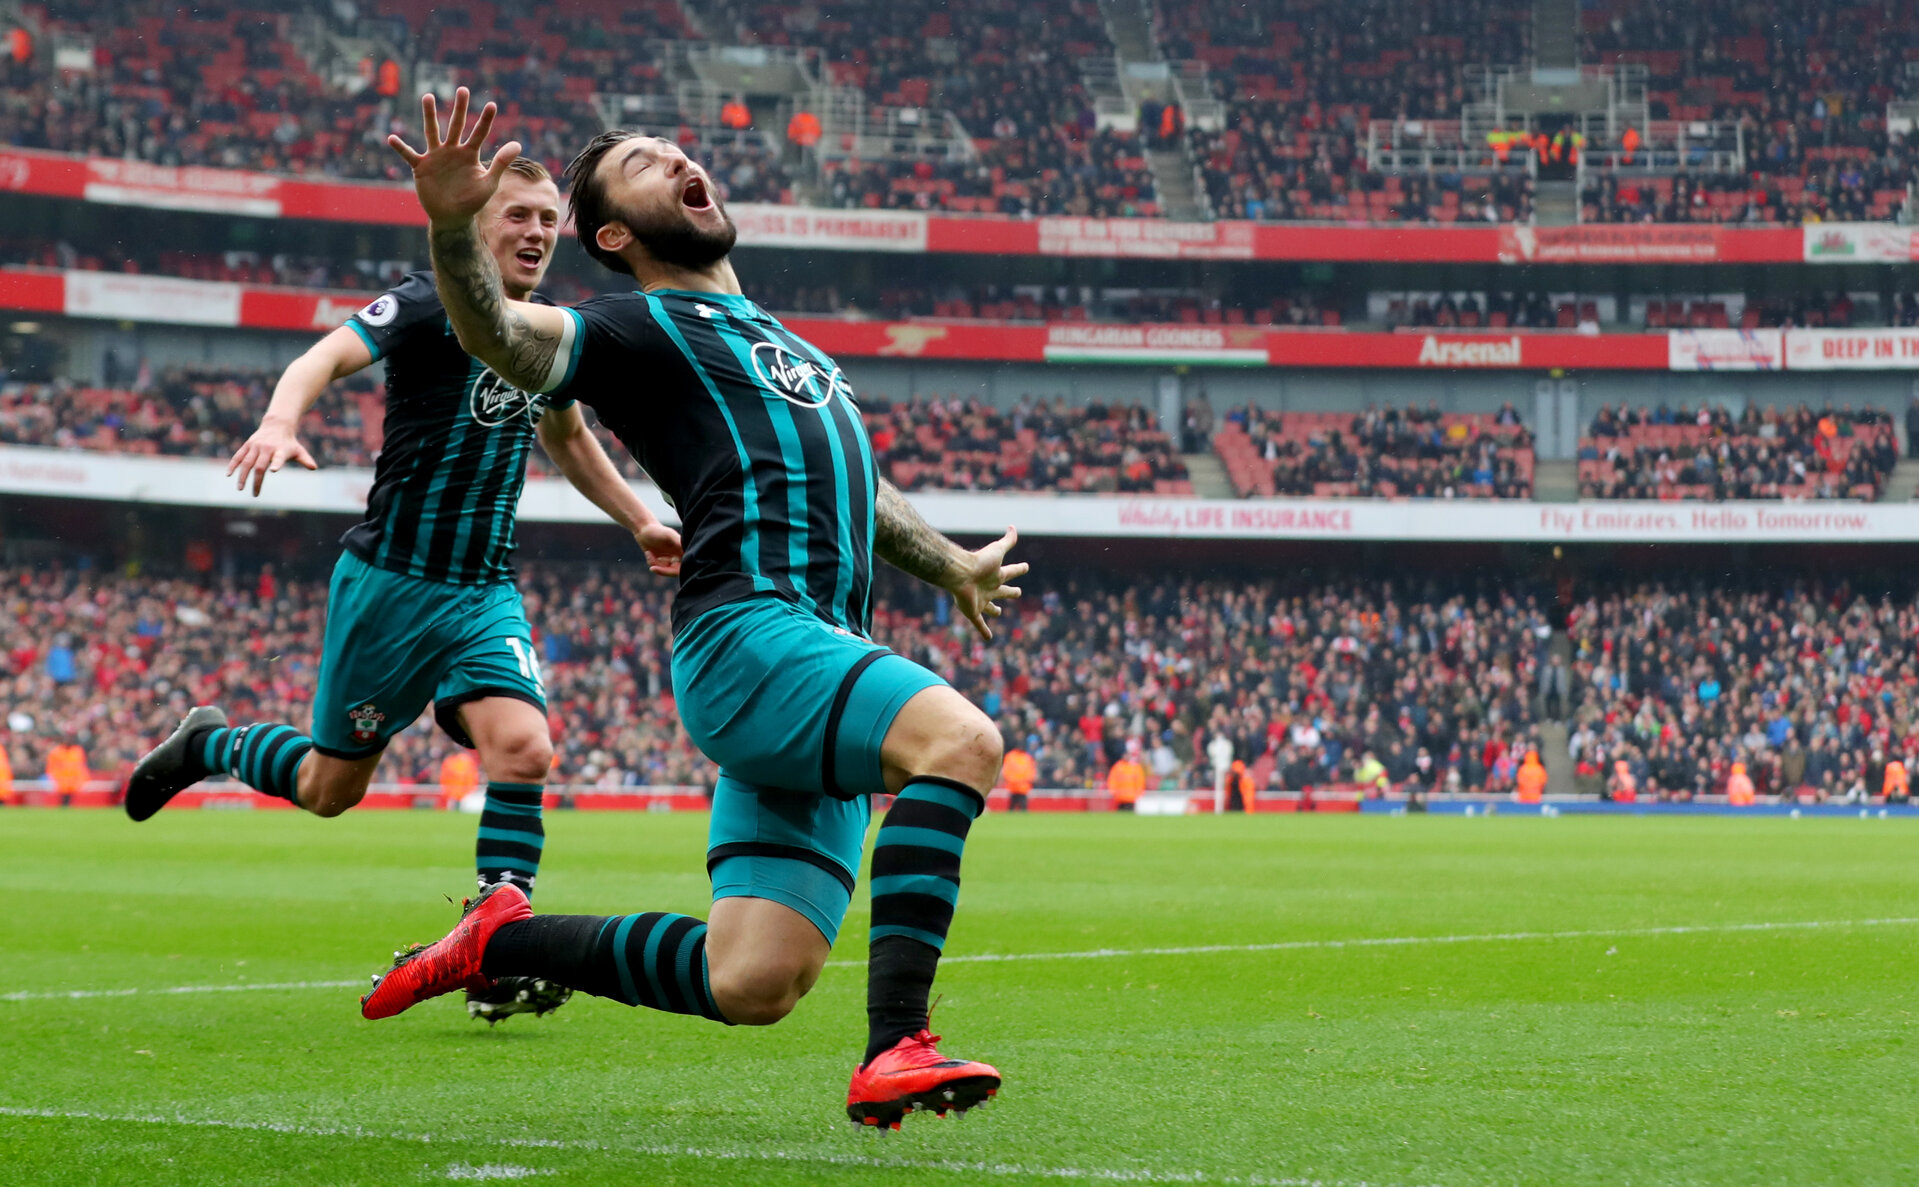 LONDON, ENGLAND - APRIL 08: Charlie Austin of Southampton celebrates after equalising during the Premier League match between Arsenal and Southampton at Emirates Stadium on April 8, 2018 in London, England. (Photo by Matt Watson/Southampton FC via Getty Images)